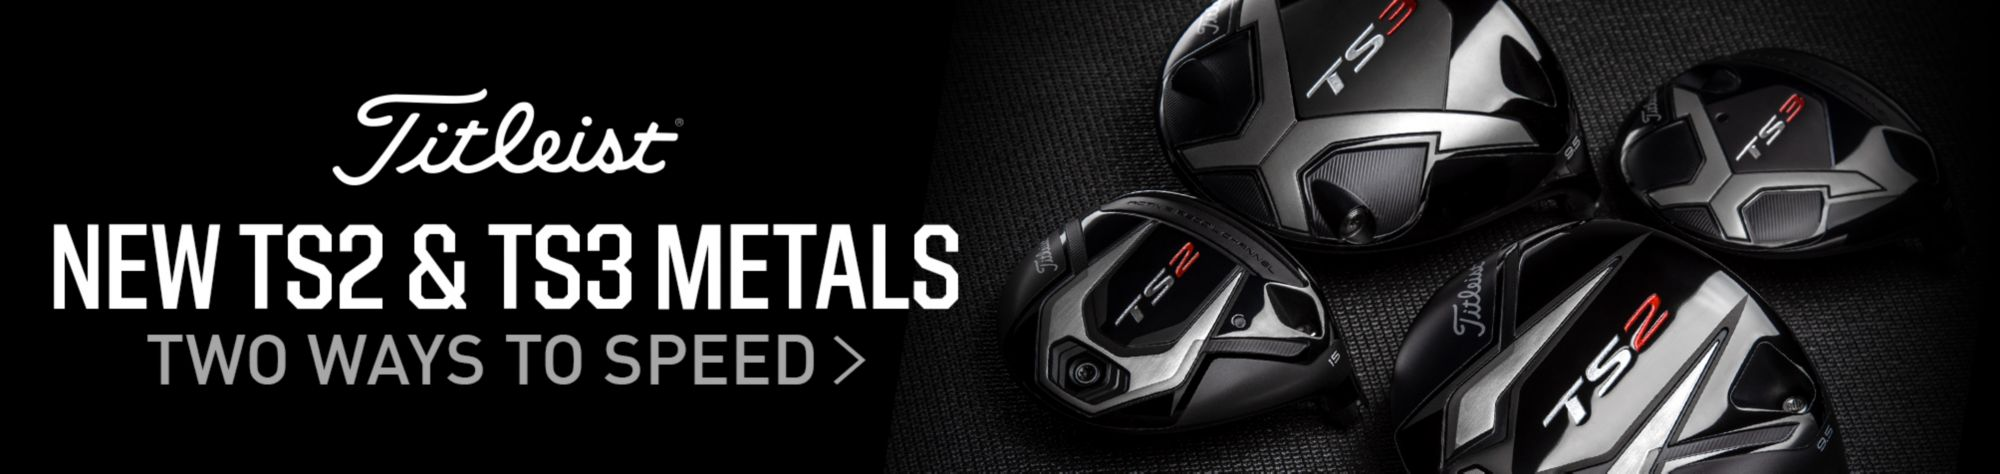 Two Ways to Speed Titleist TS2 & TS3 Straight. Specialized. Speed Shop Now